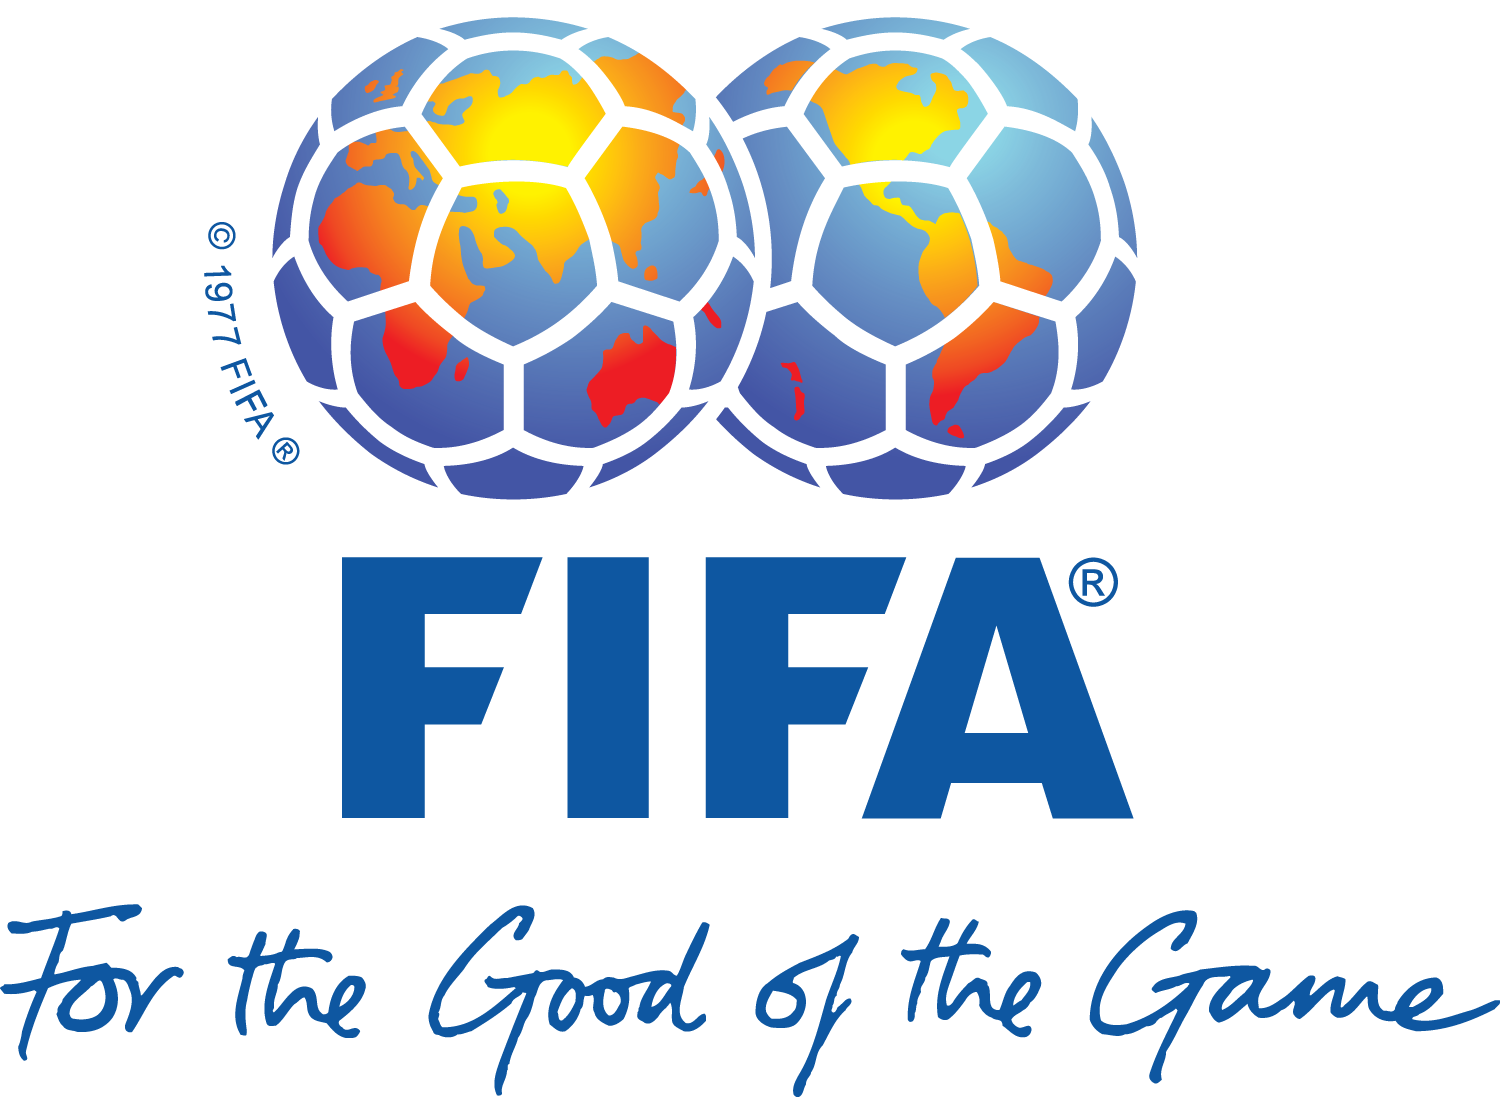 https://vignette3.wikia.nocookie.net/logopedia/images/5/5c/FIFA_Logo.png/revision/latest?cb=20150211093210